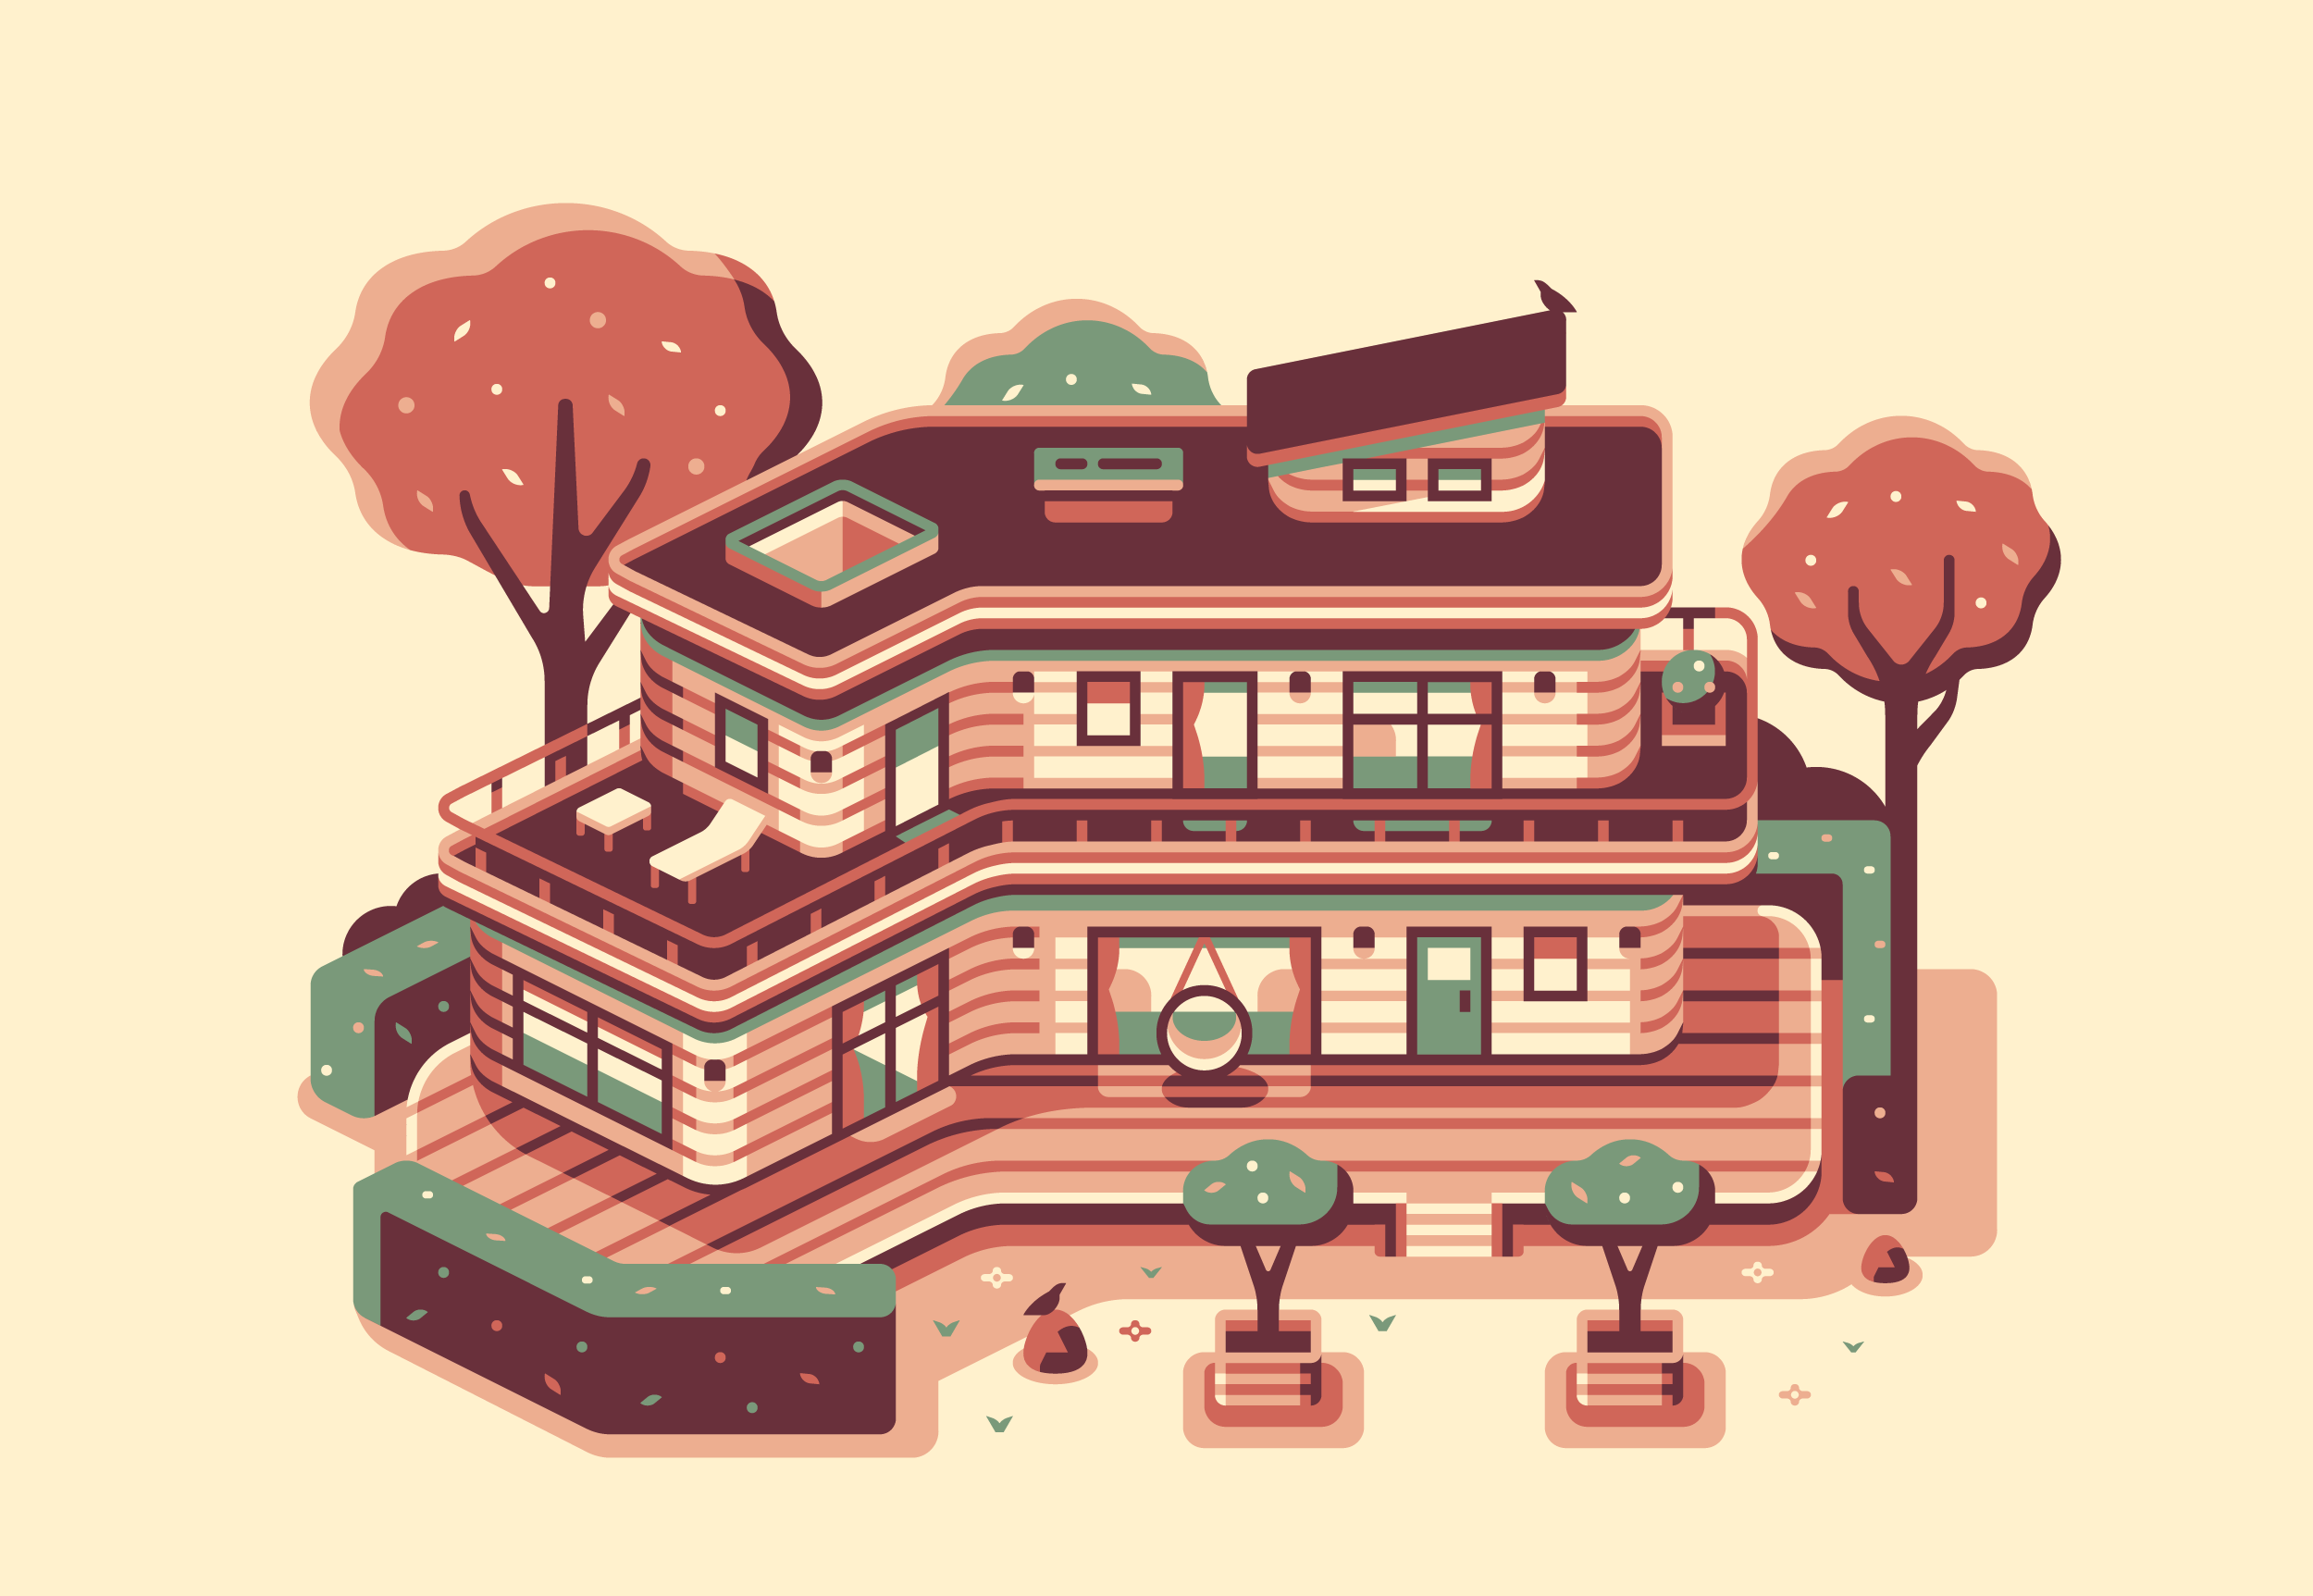 Woodland House, Modern Home series illustration by Matt Anderson and Canopy Design and Illustration